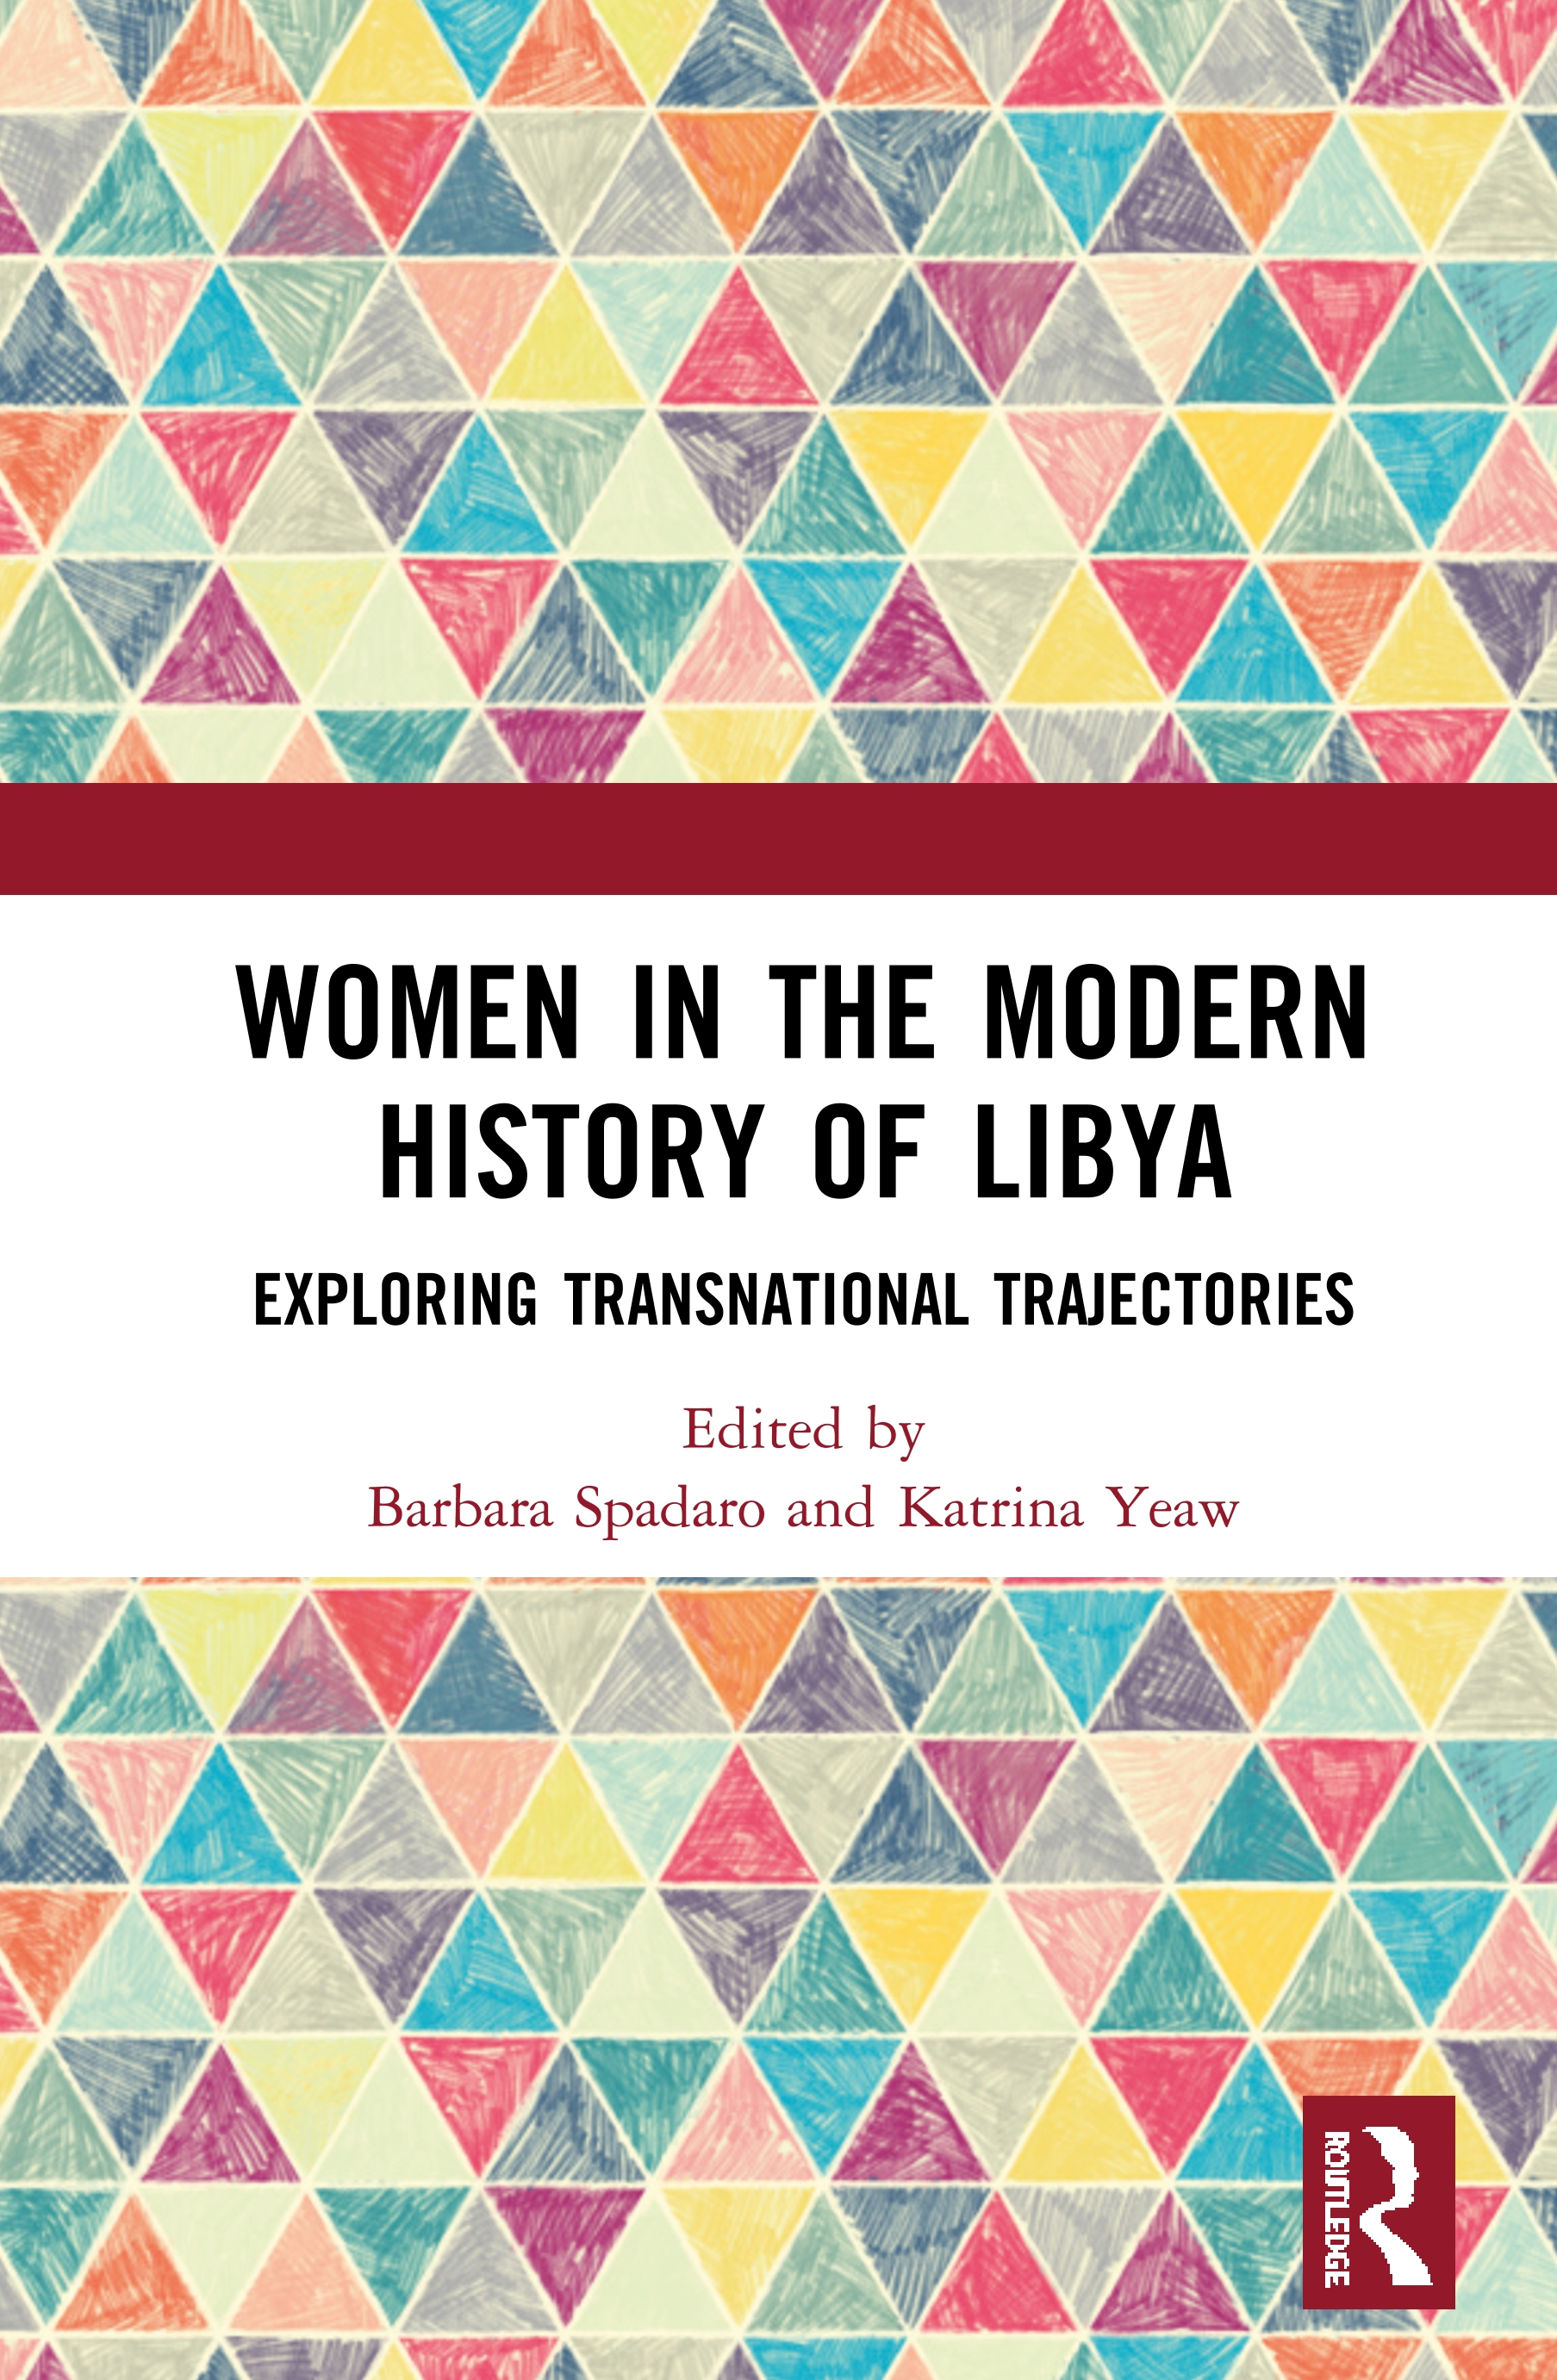 Women in the Modern History of Libya: Exploring Transnational Trajectories book cover